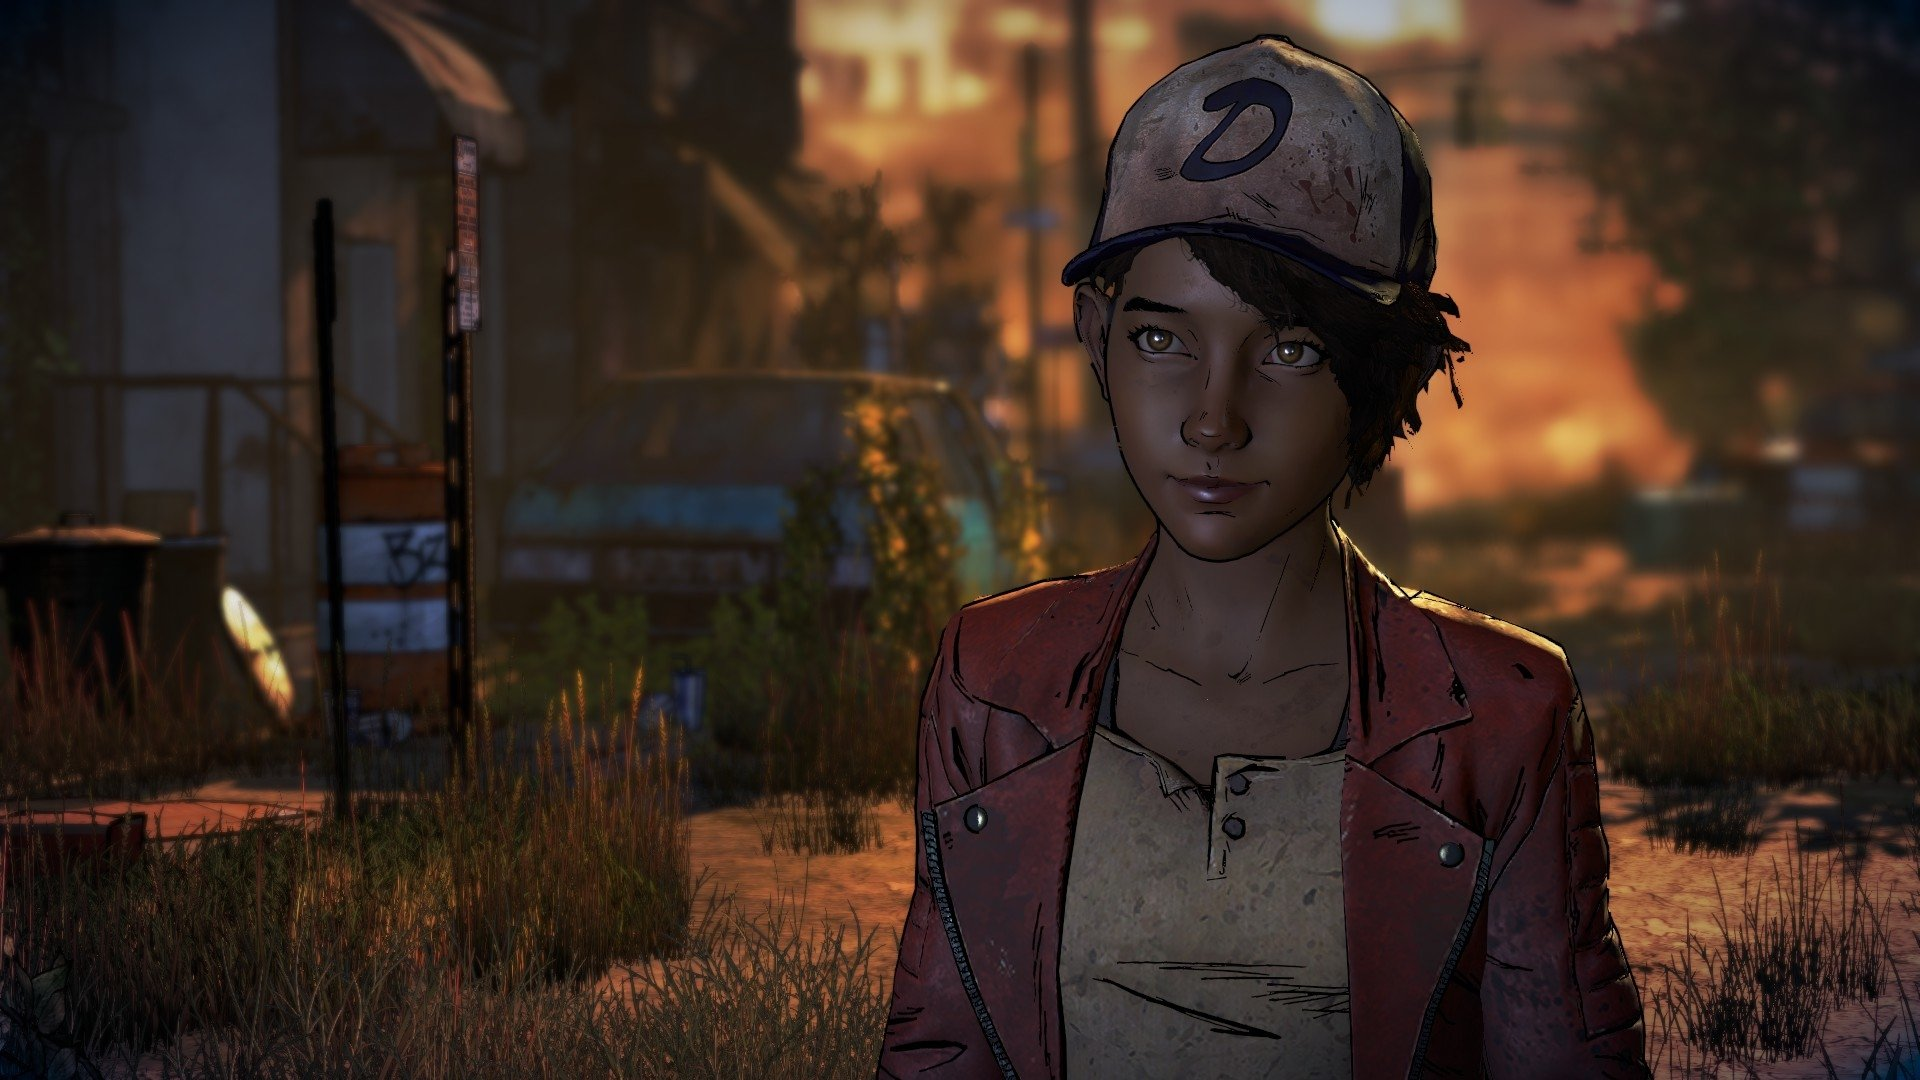 58 Clementine The Walking Dead HD Wallpapers Background Images 1920x1080